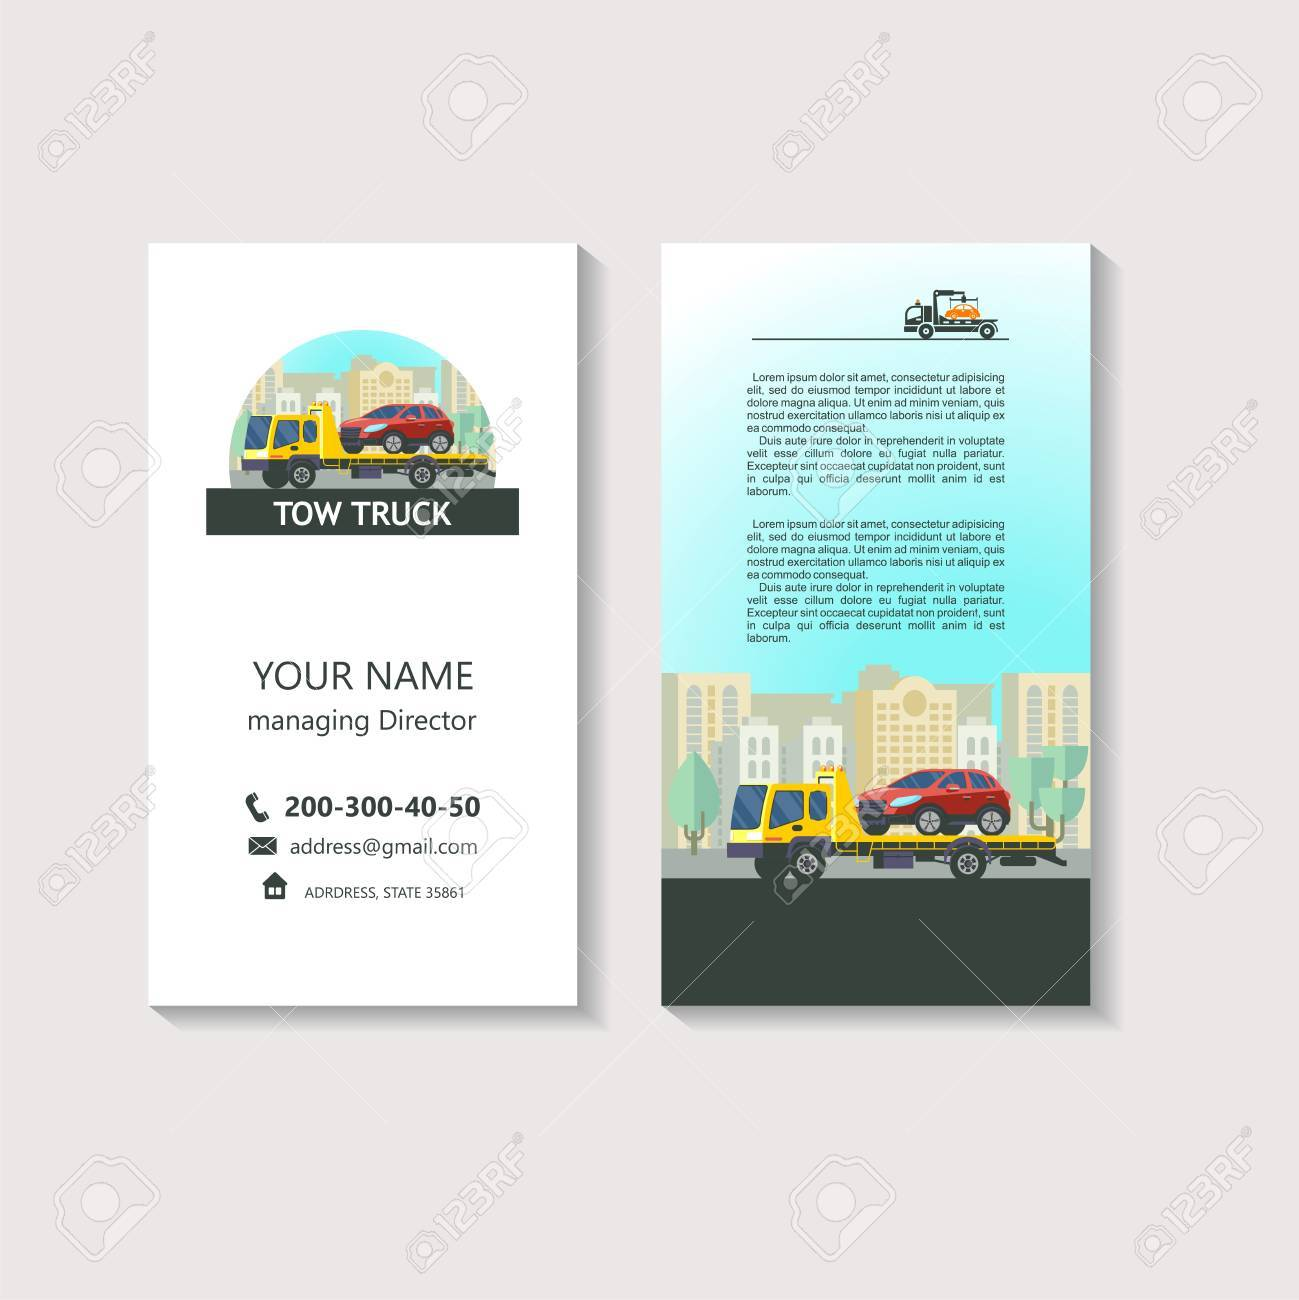 200 free business cards gallery free business cards al capone business cards choice image free business cards dump truck business cards image collections free magicingreecefo Images